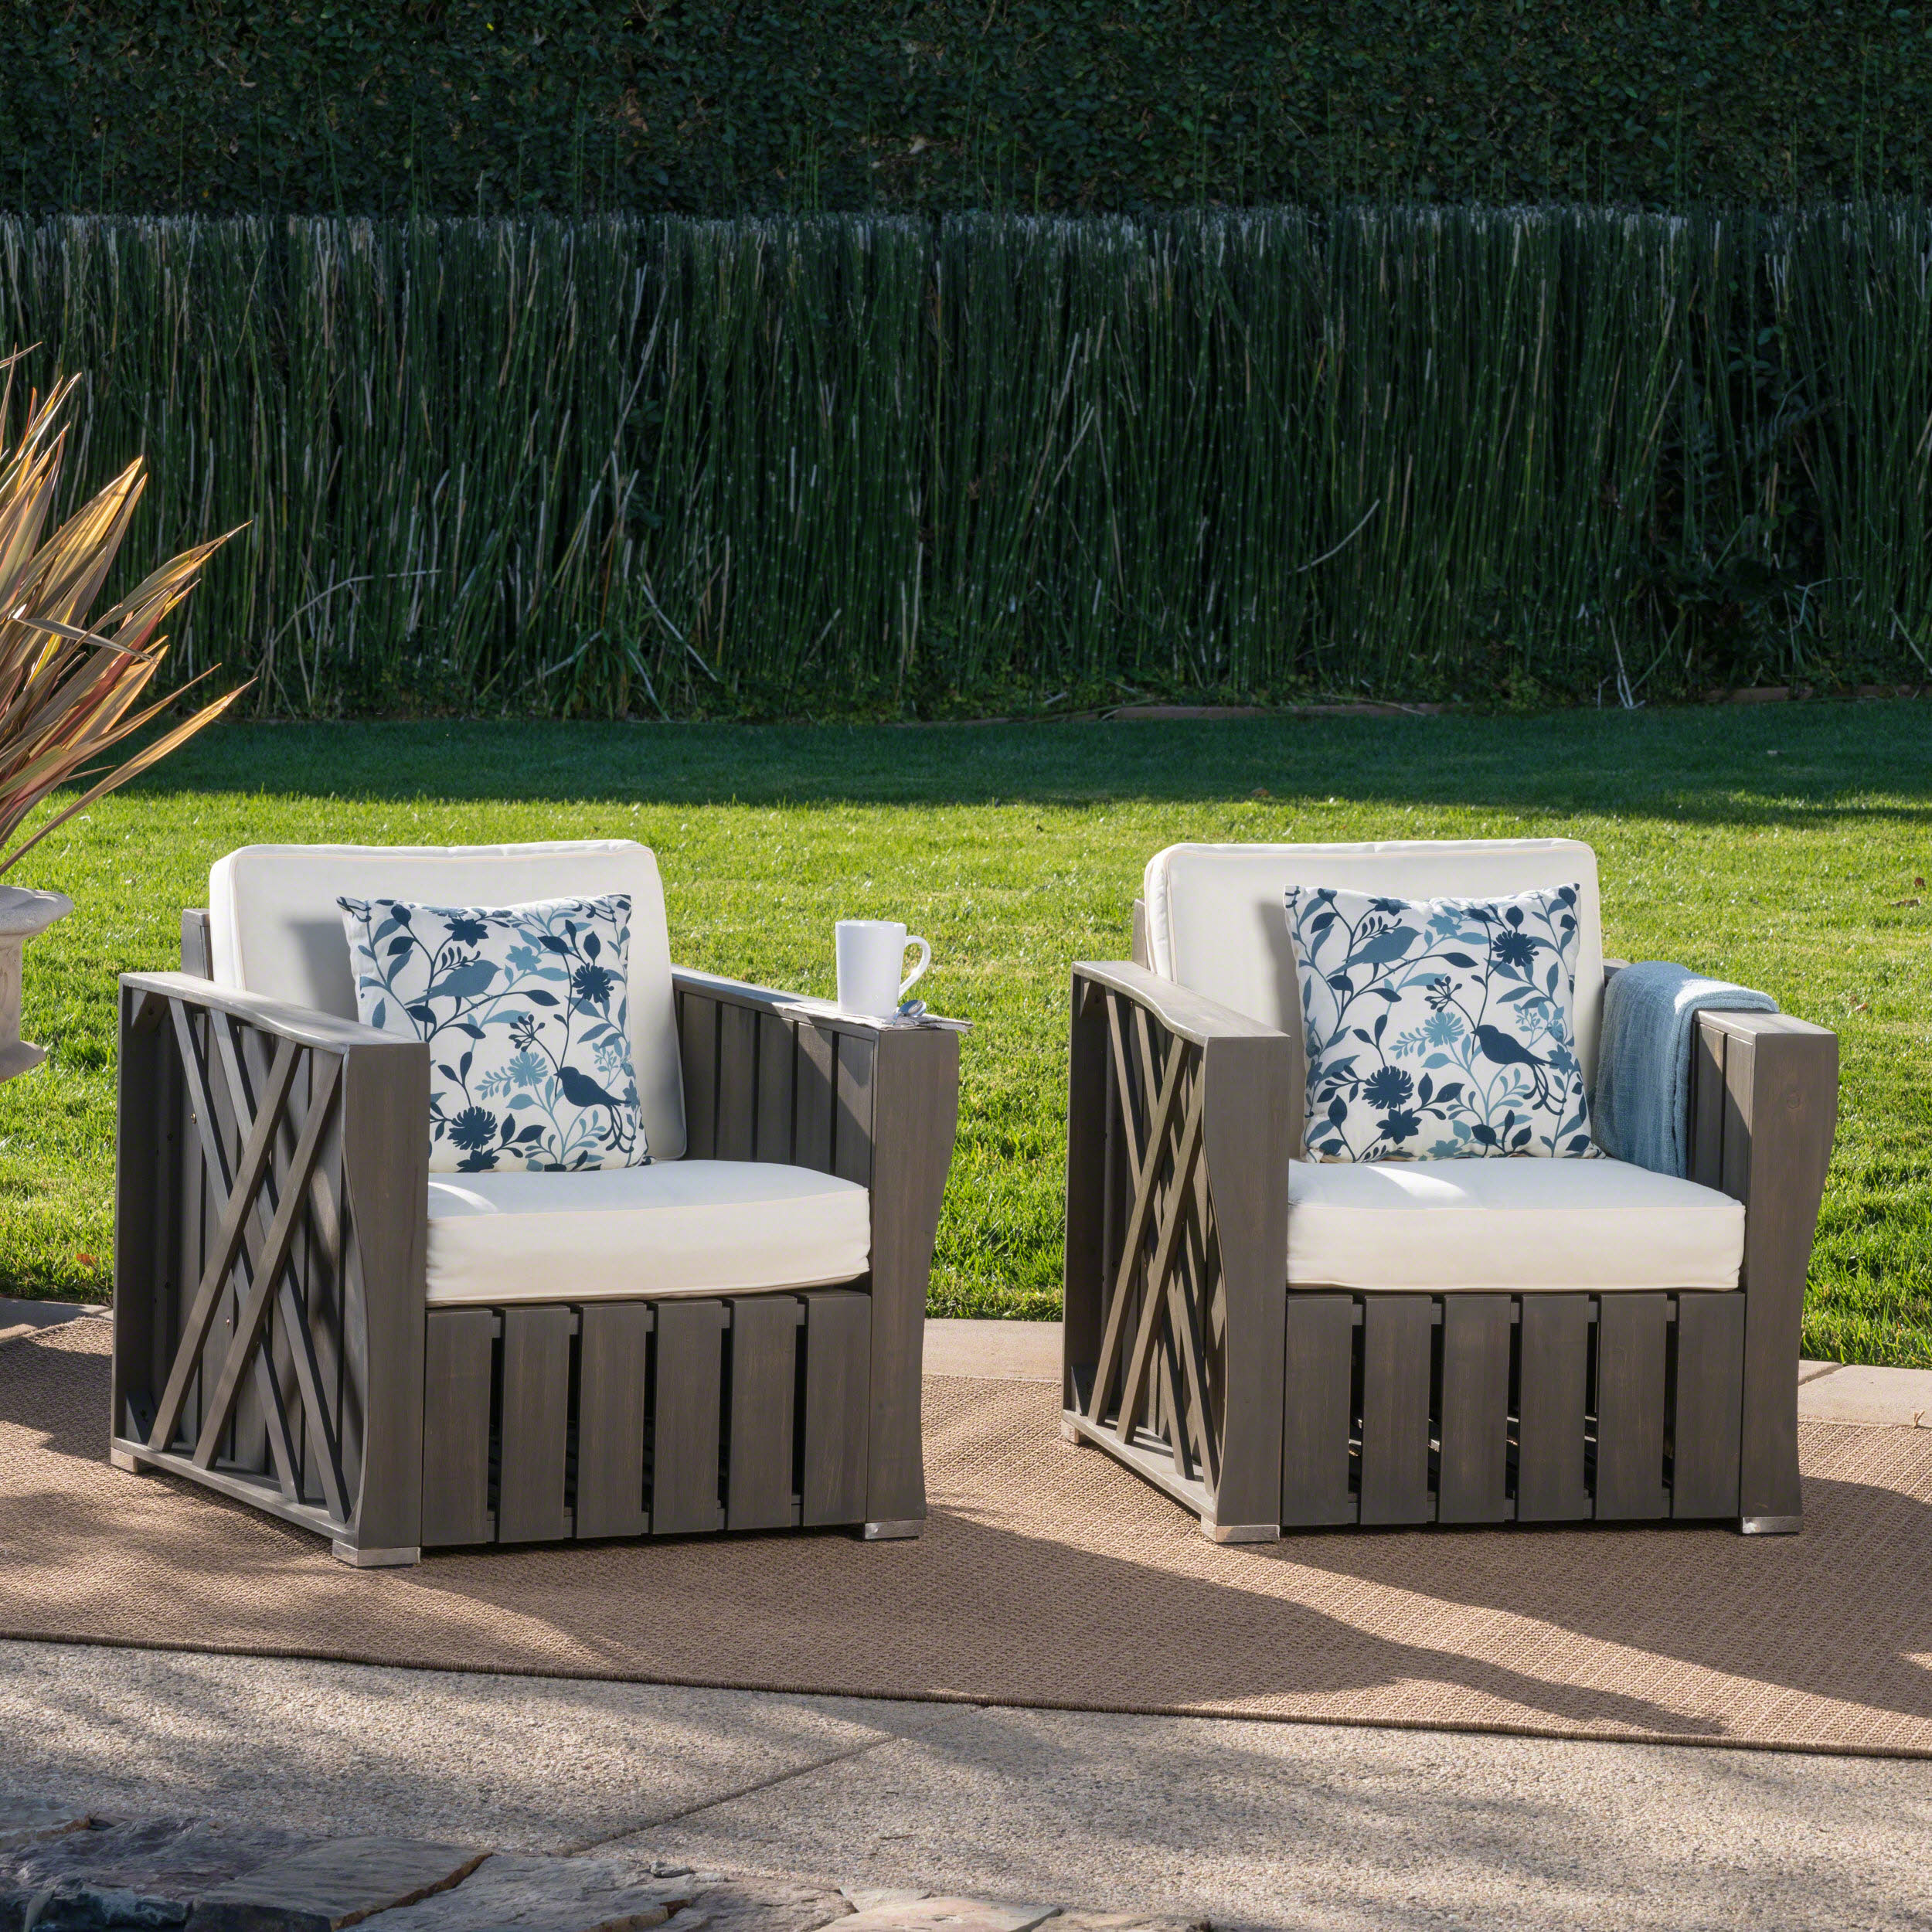 Edward Outdoor Acacia Wood Club Chairs with Weather Resistant Cushions, Set of 2, Grey Finish and Cream